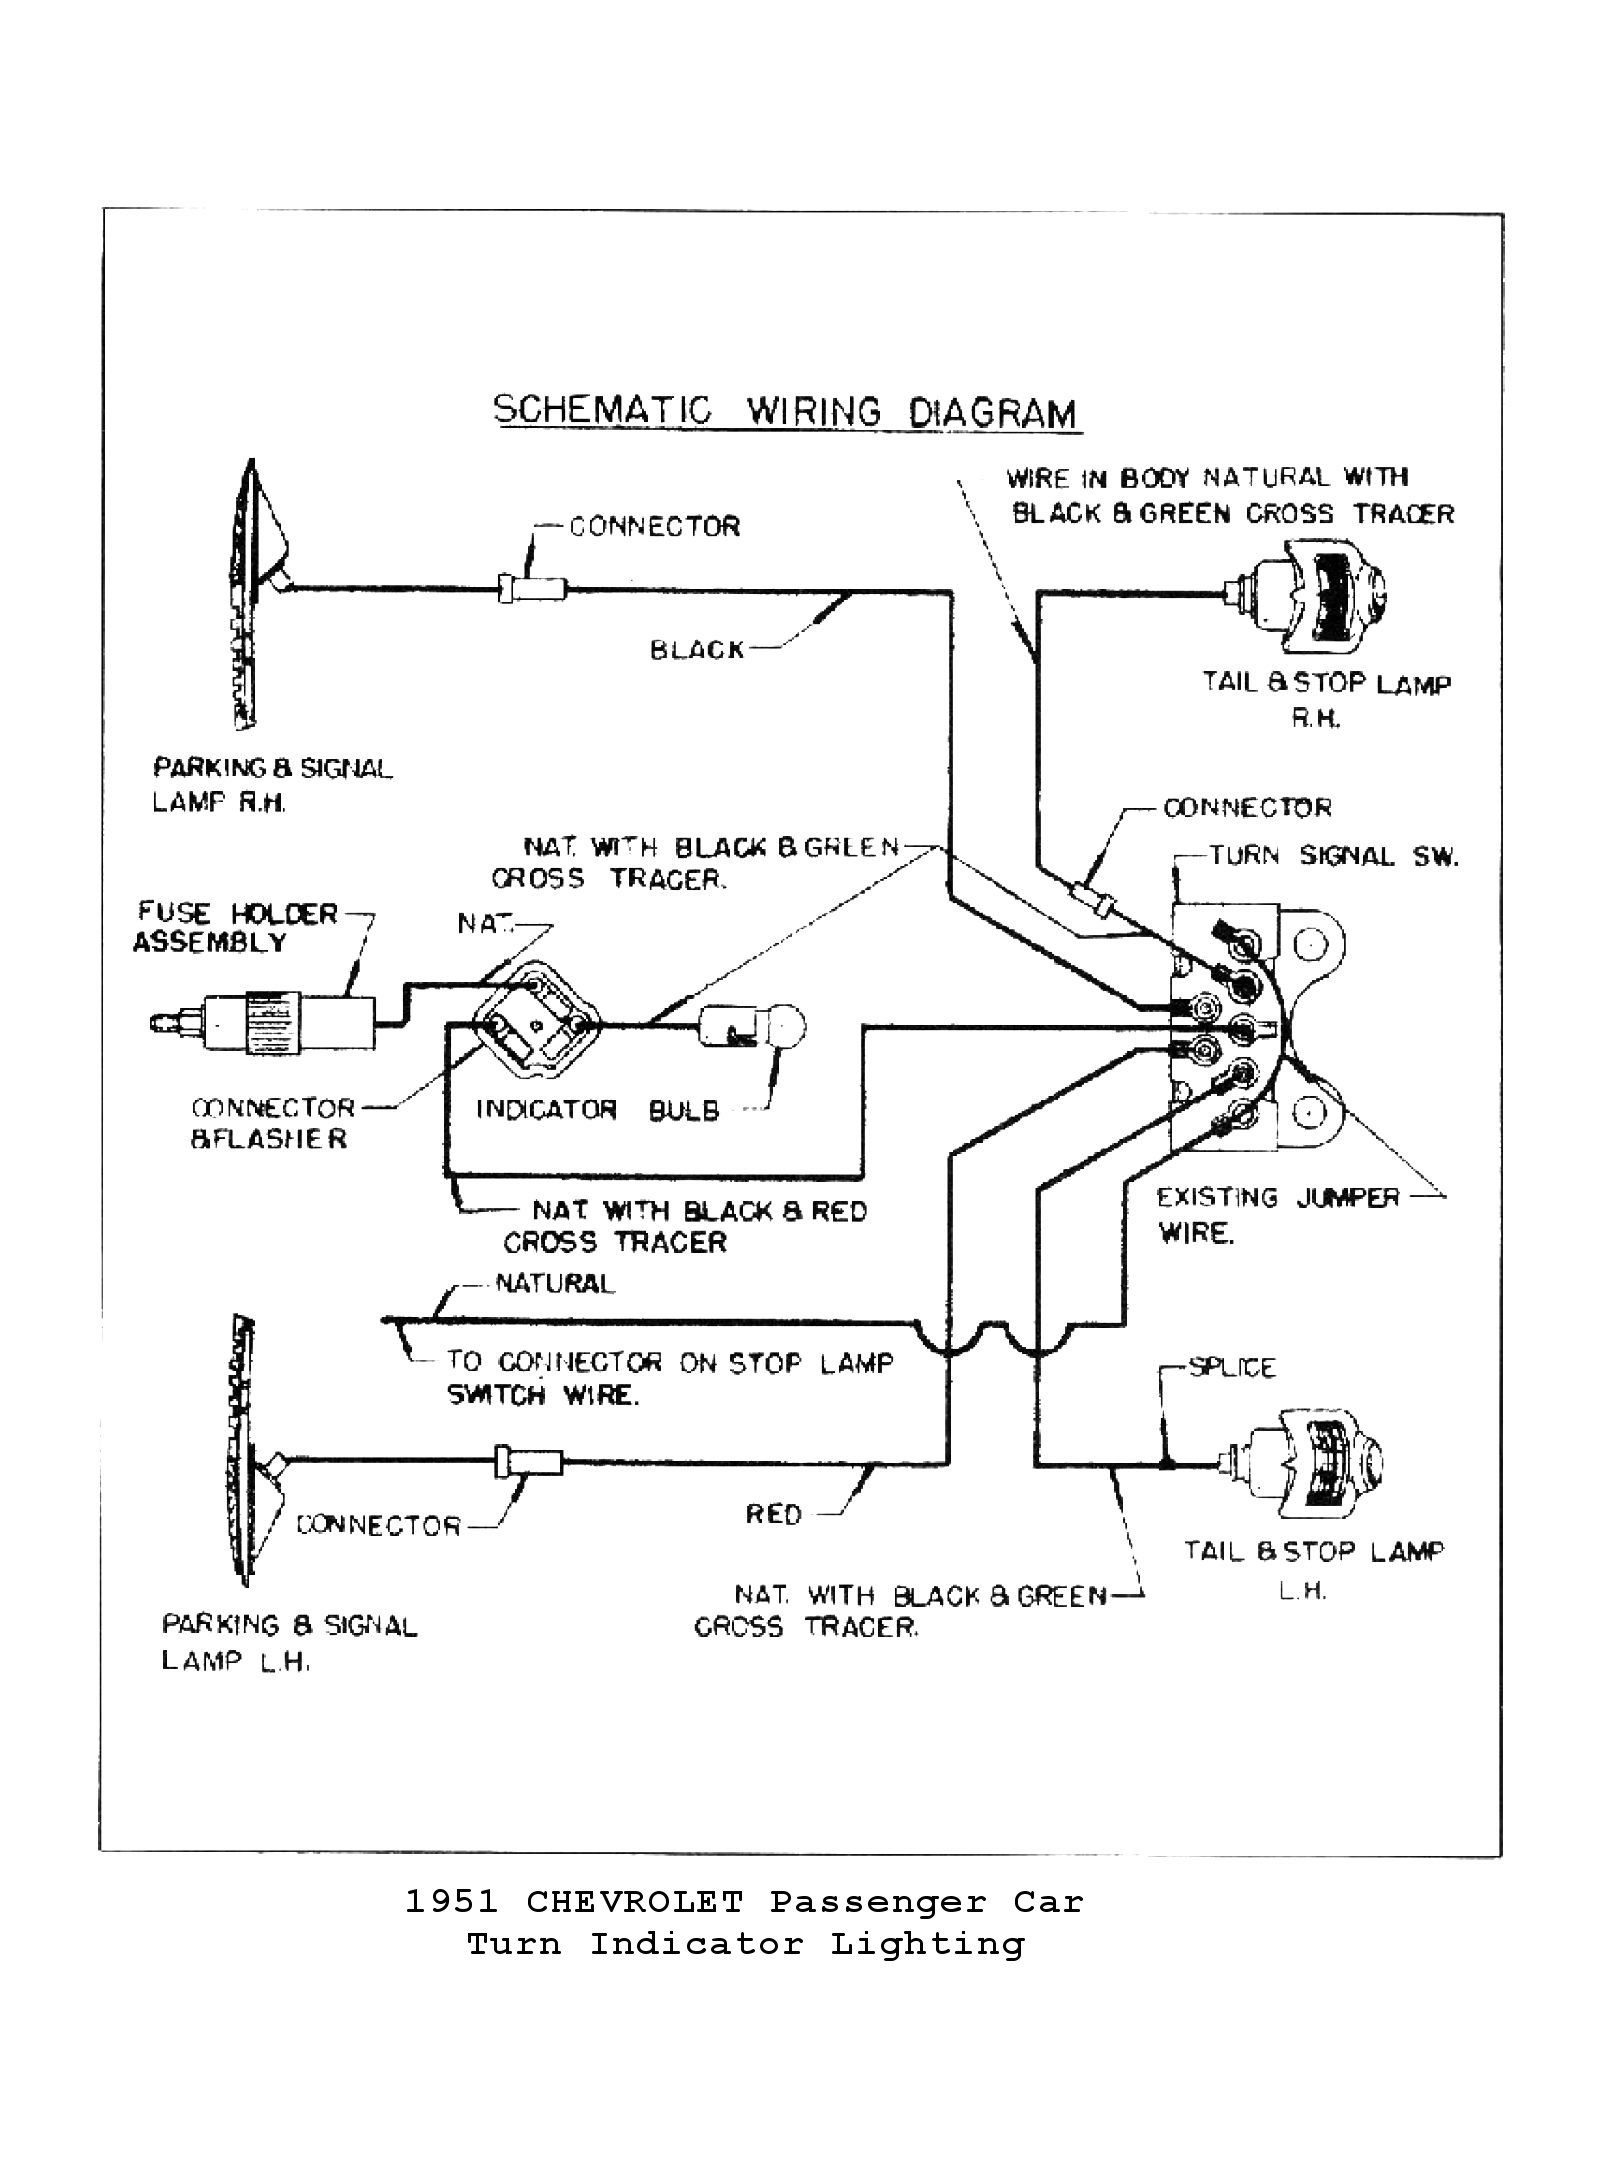 Tremendous 1948 Lincoln Wiring Diagram Wiring Library Wiring Digital Resources Indicompassionincorg